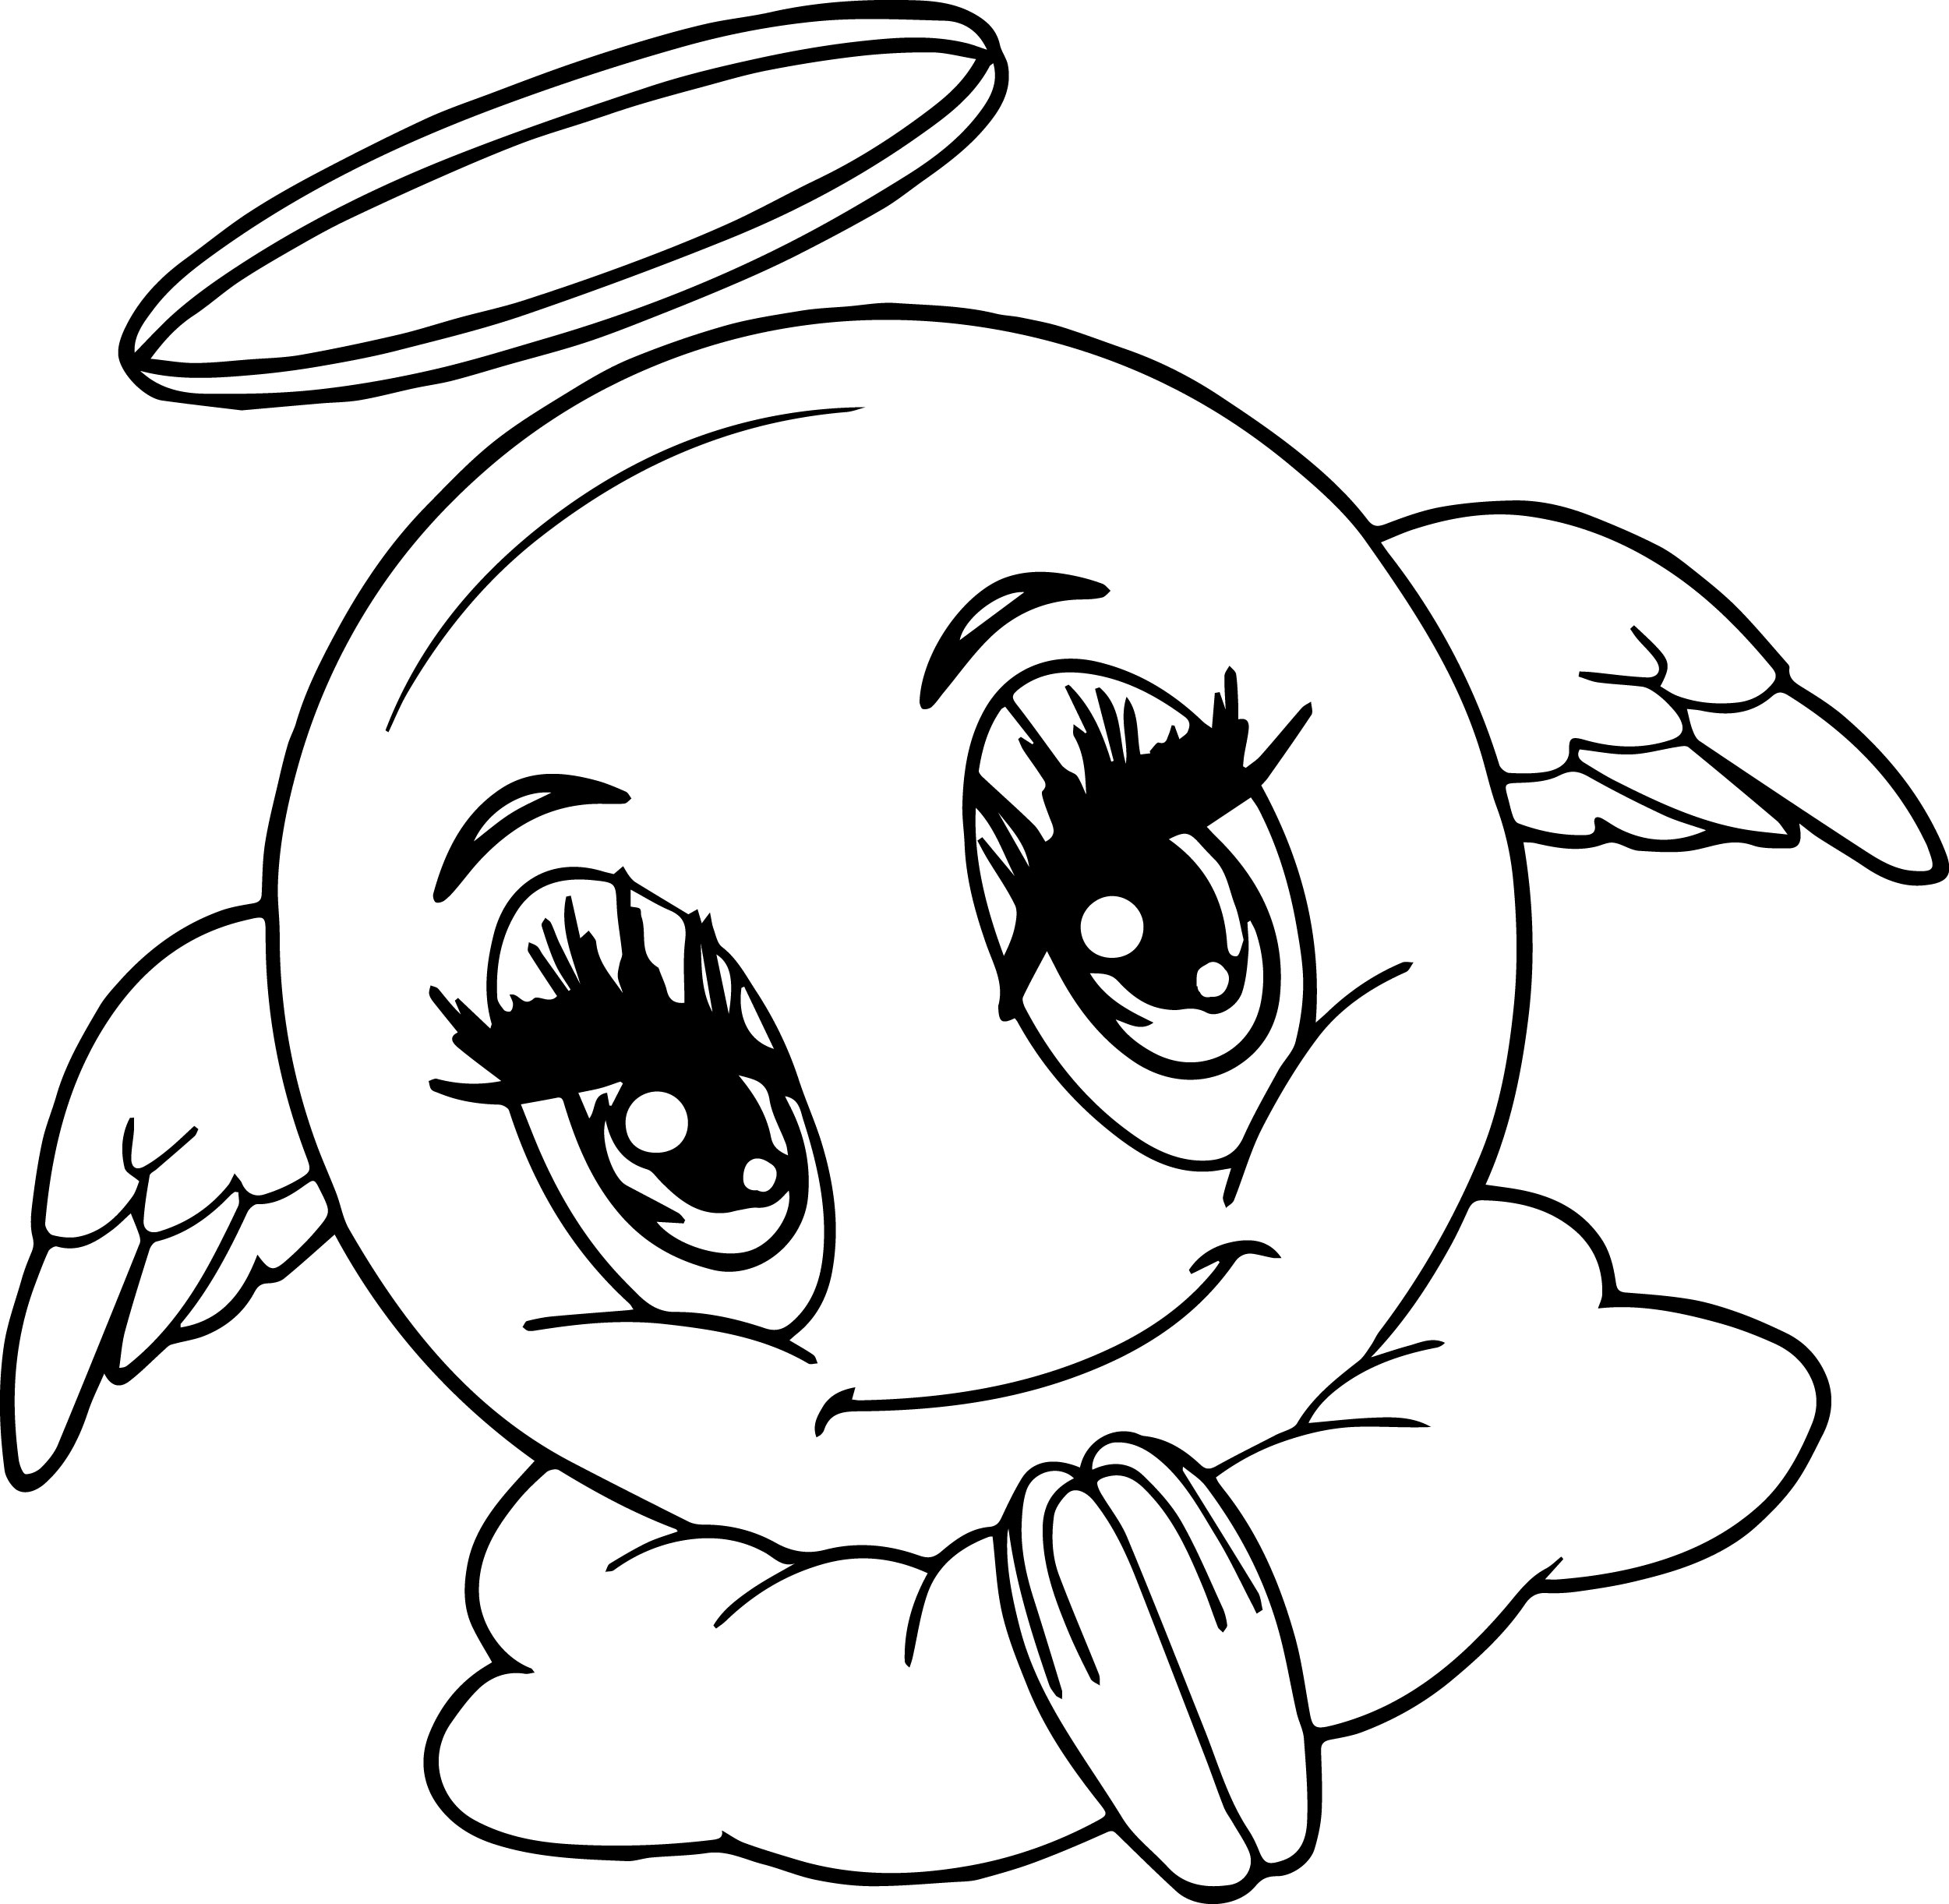 Emoji coloring pages best coloring pages for kids for Coloring pages t